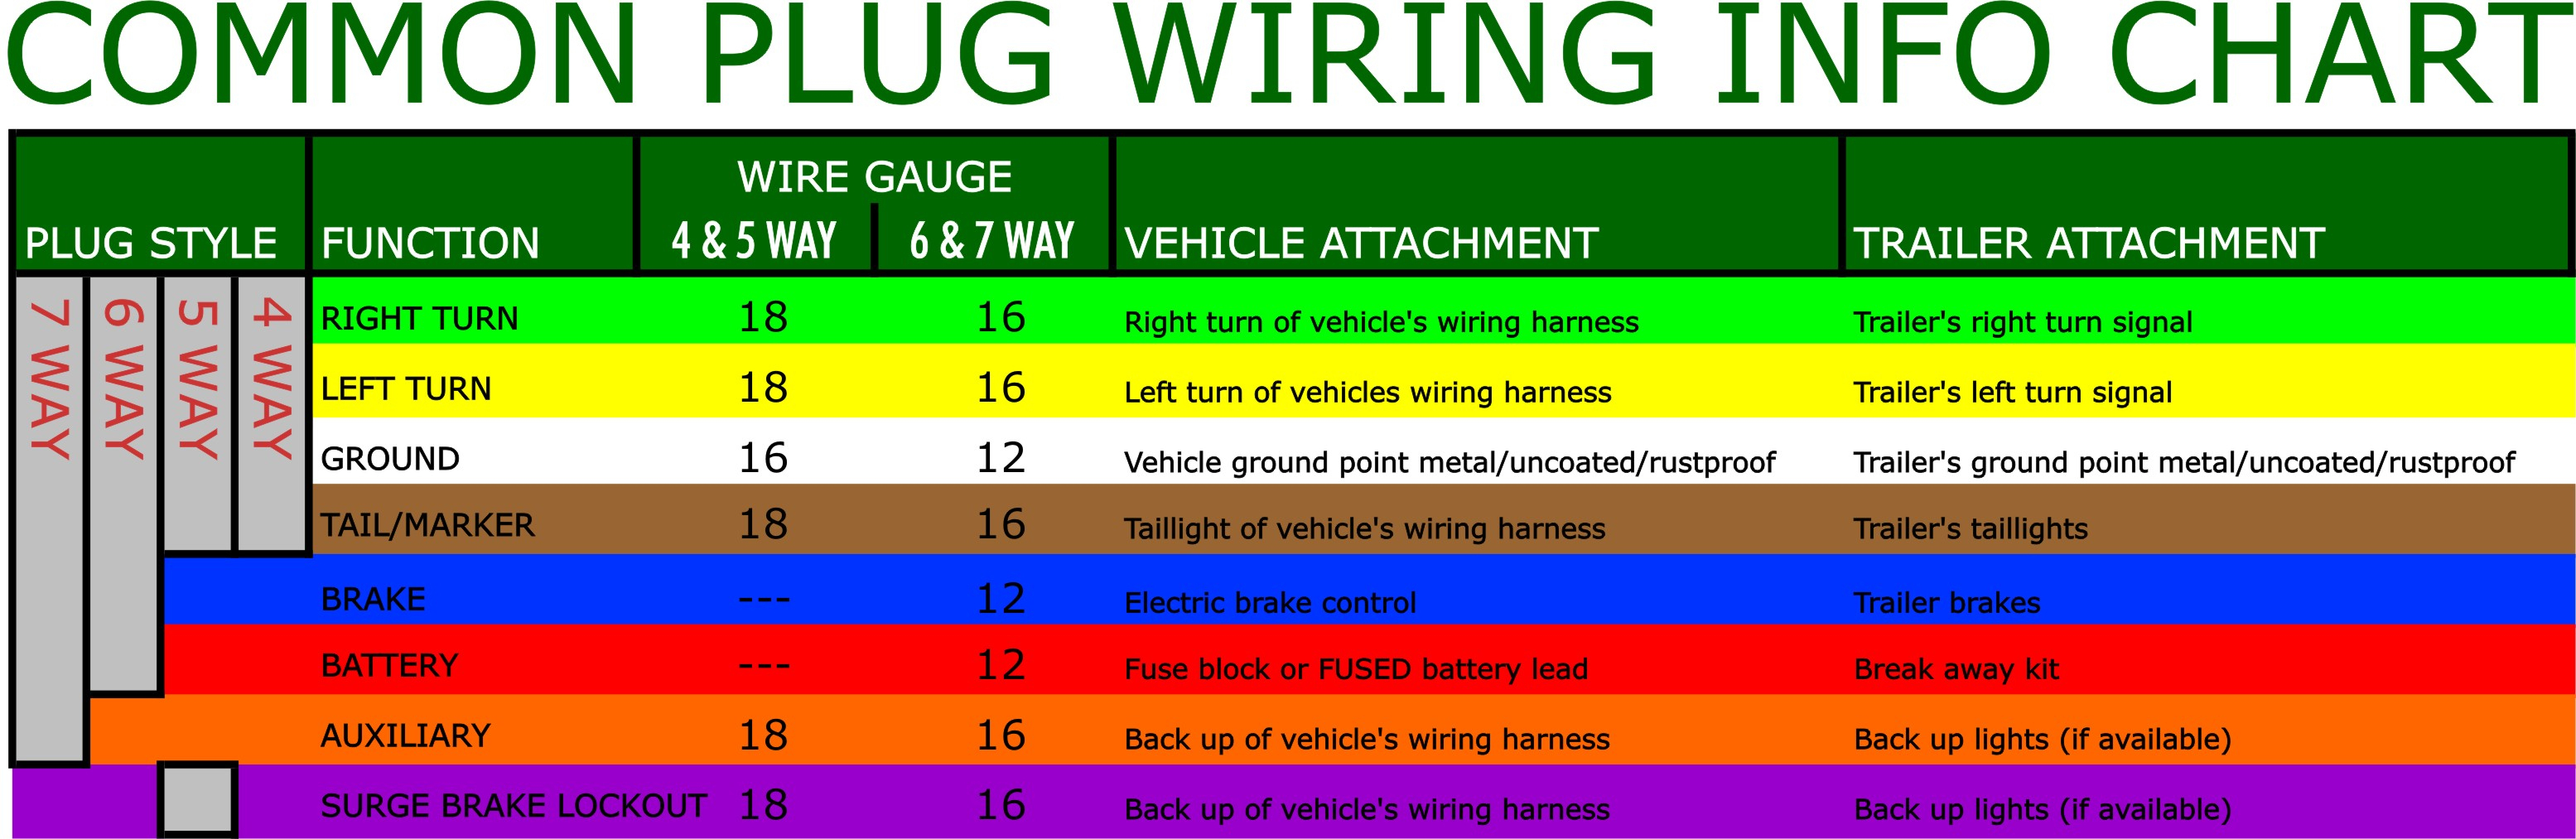 4 Pin Trailer Connector Wiring Harness | Wiring Diagram - 15 Pin Trailer Wiring Diagram